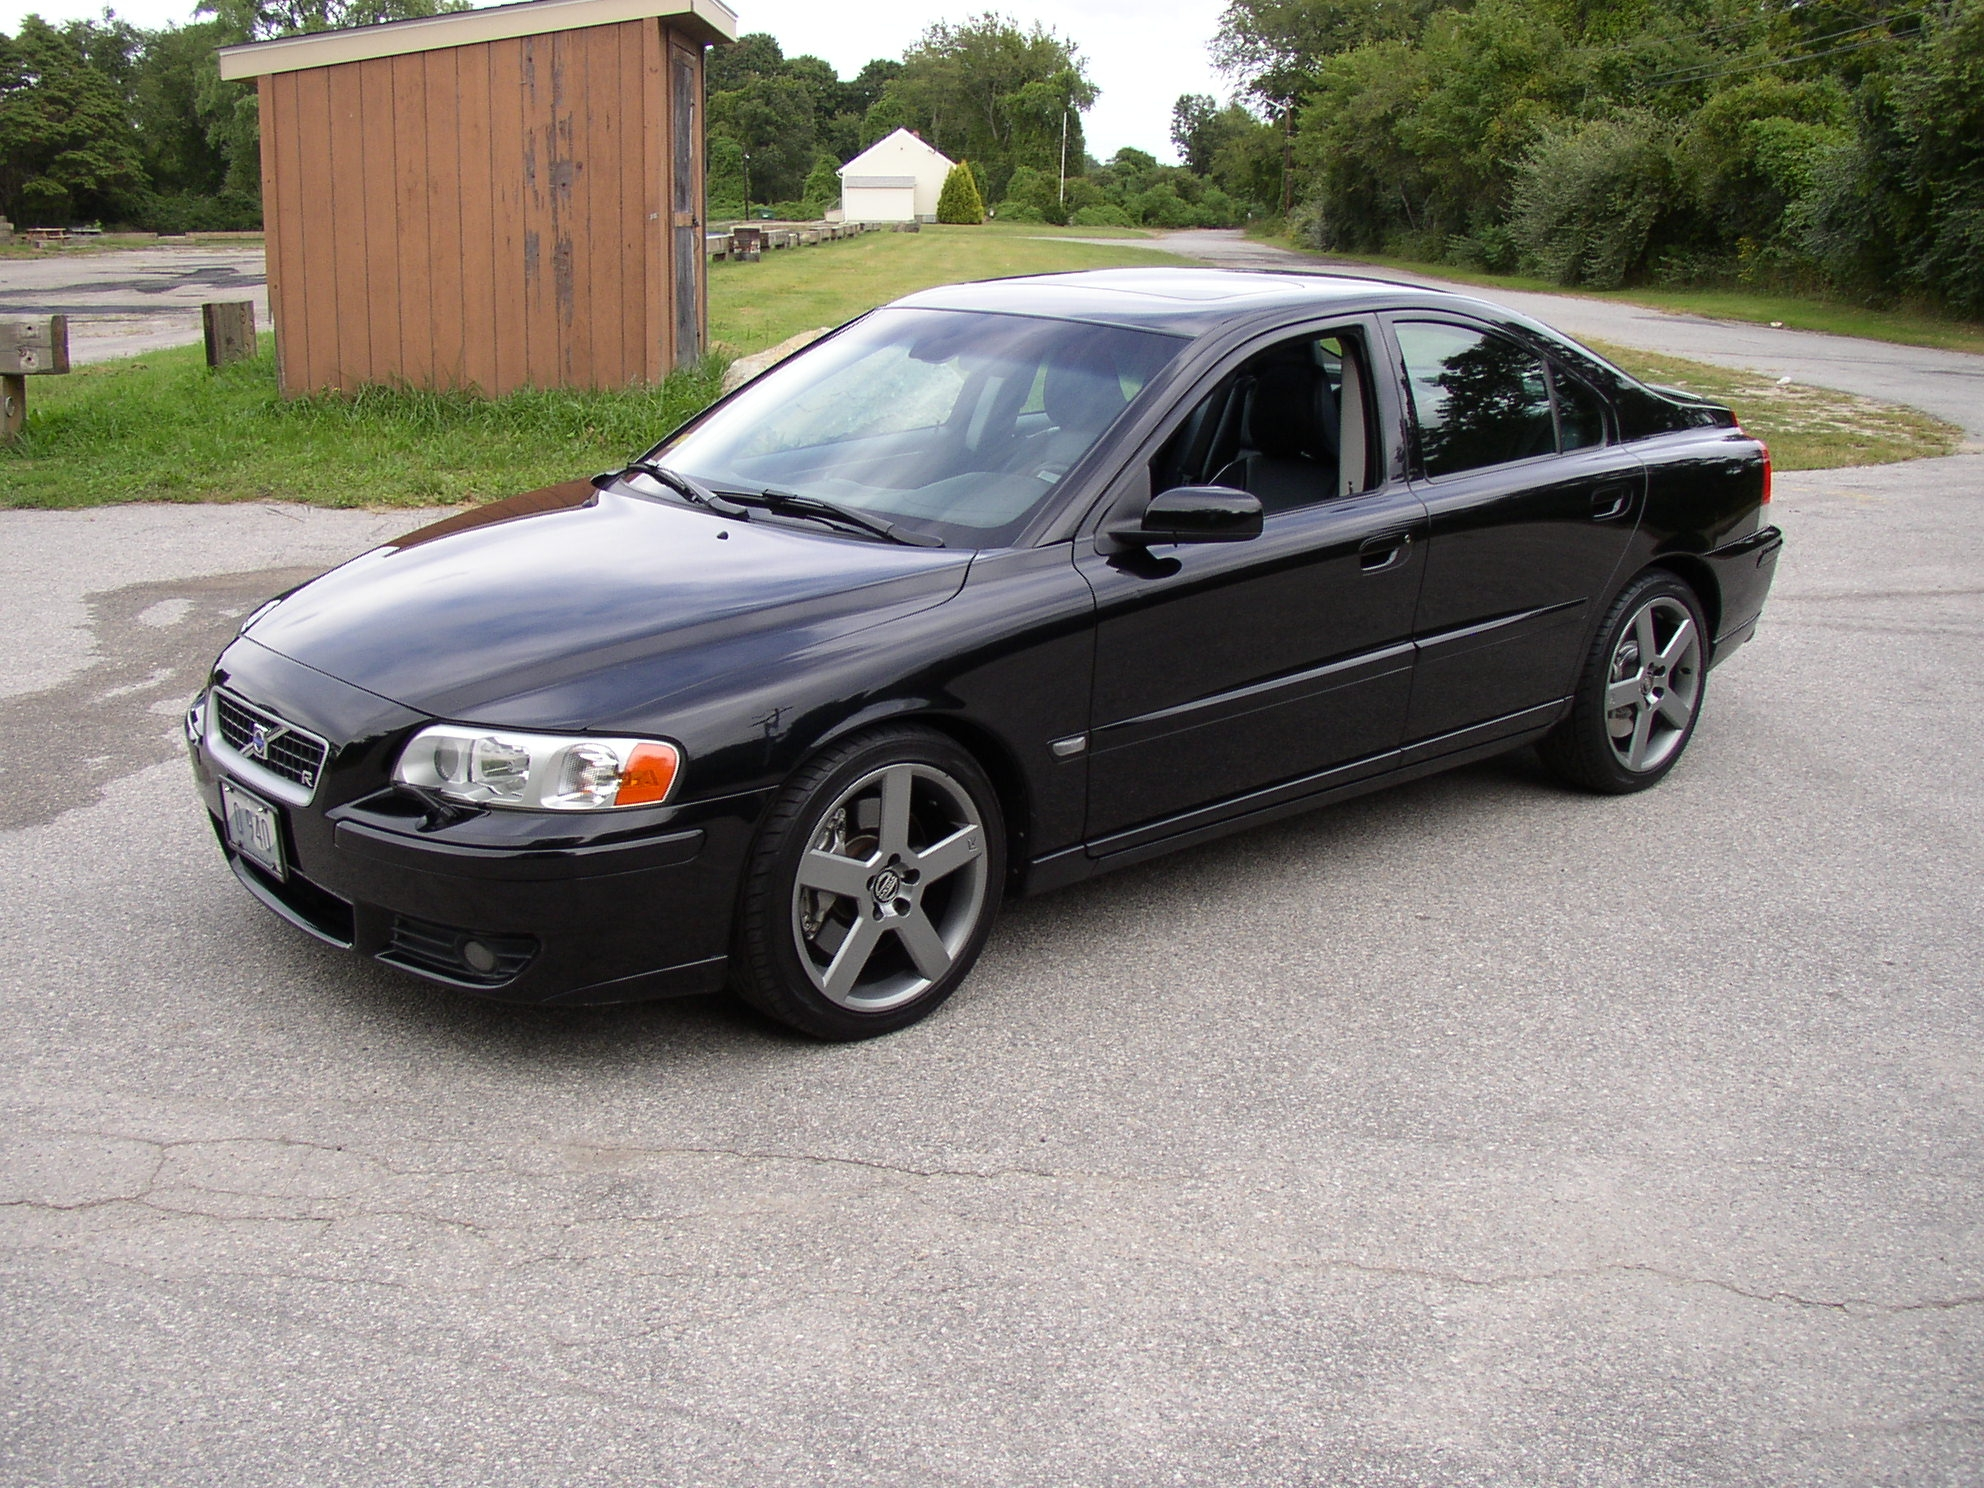 2005 volvo s60 2 5t grondines quebec used car for sale - Mikeo37 2005 Volvo S60r Sedan 4d Specs Photos